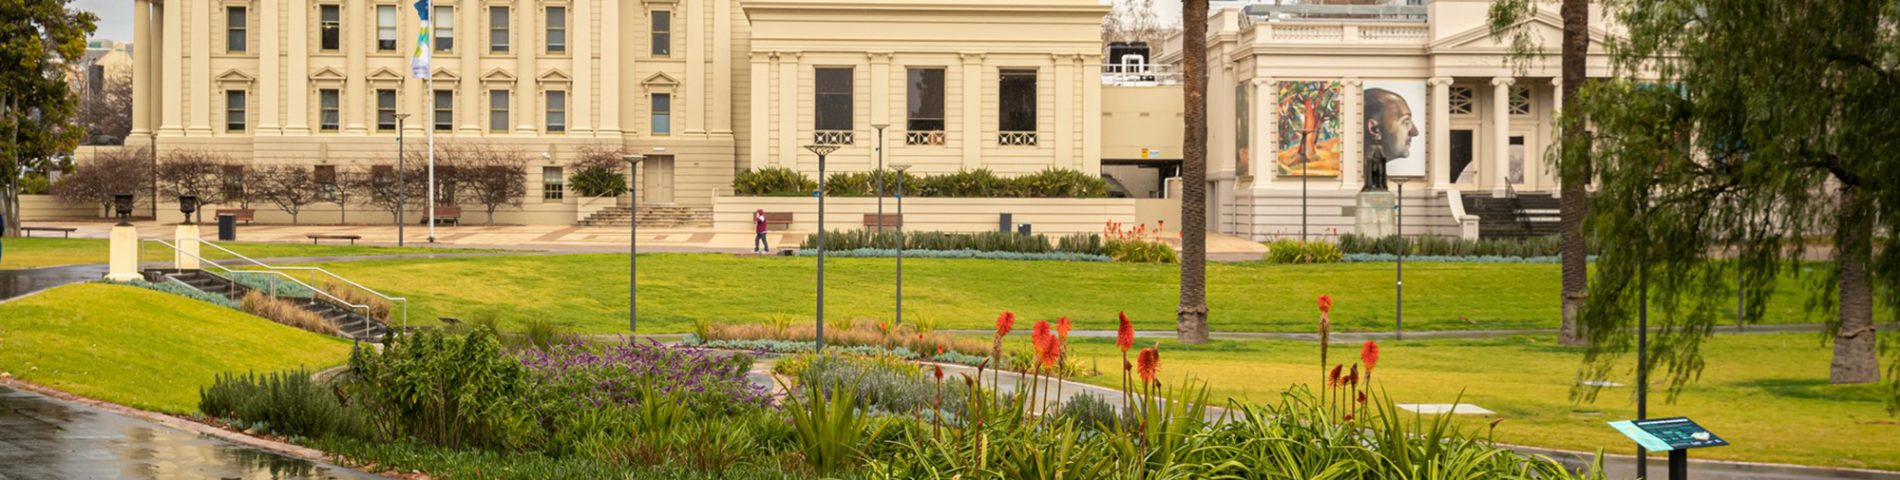 property and infrastructure consultants, geelong, spiire, water engineering, landscape architecture, stormwater harvesting